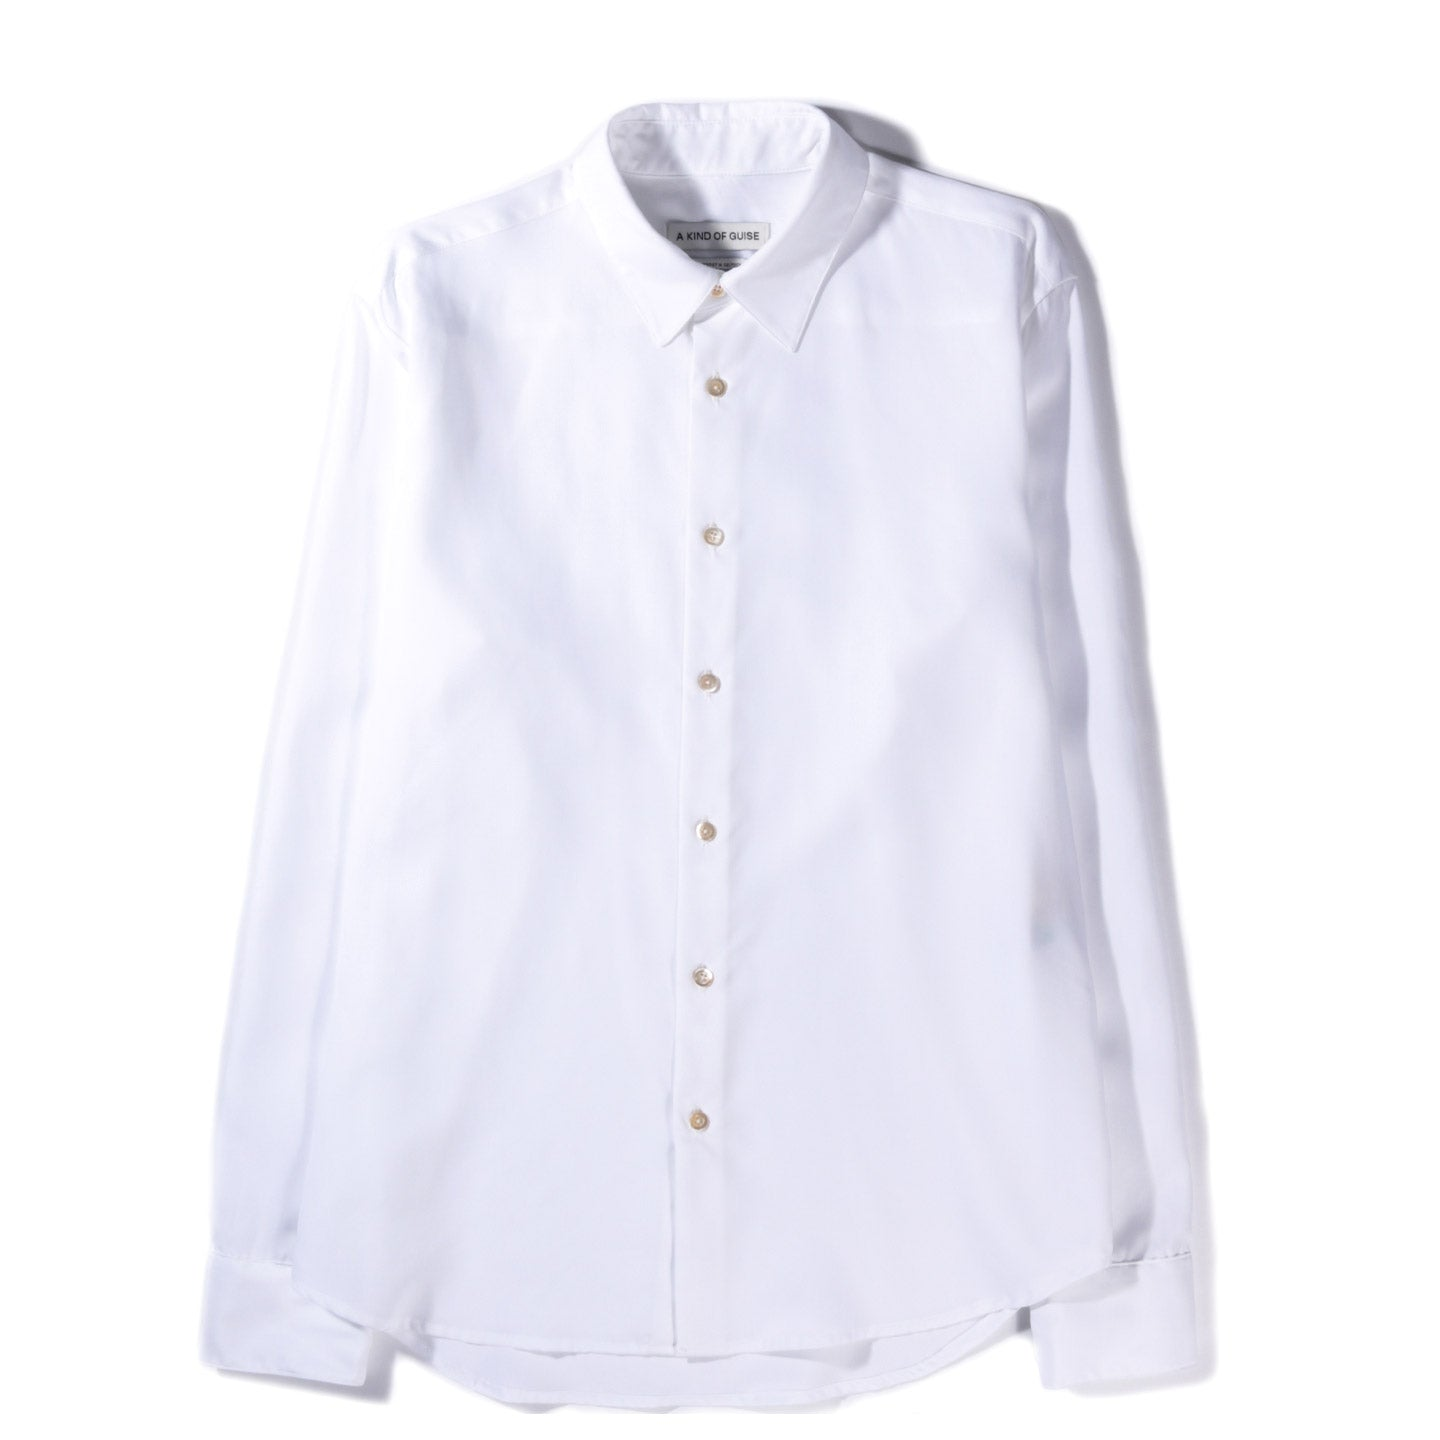 A KIND OF GUISE FLORES SHIRT WHITE